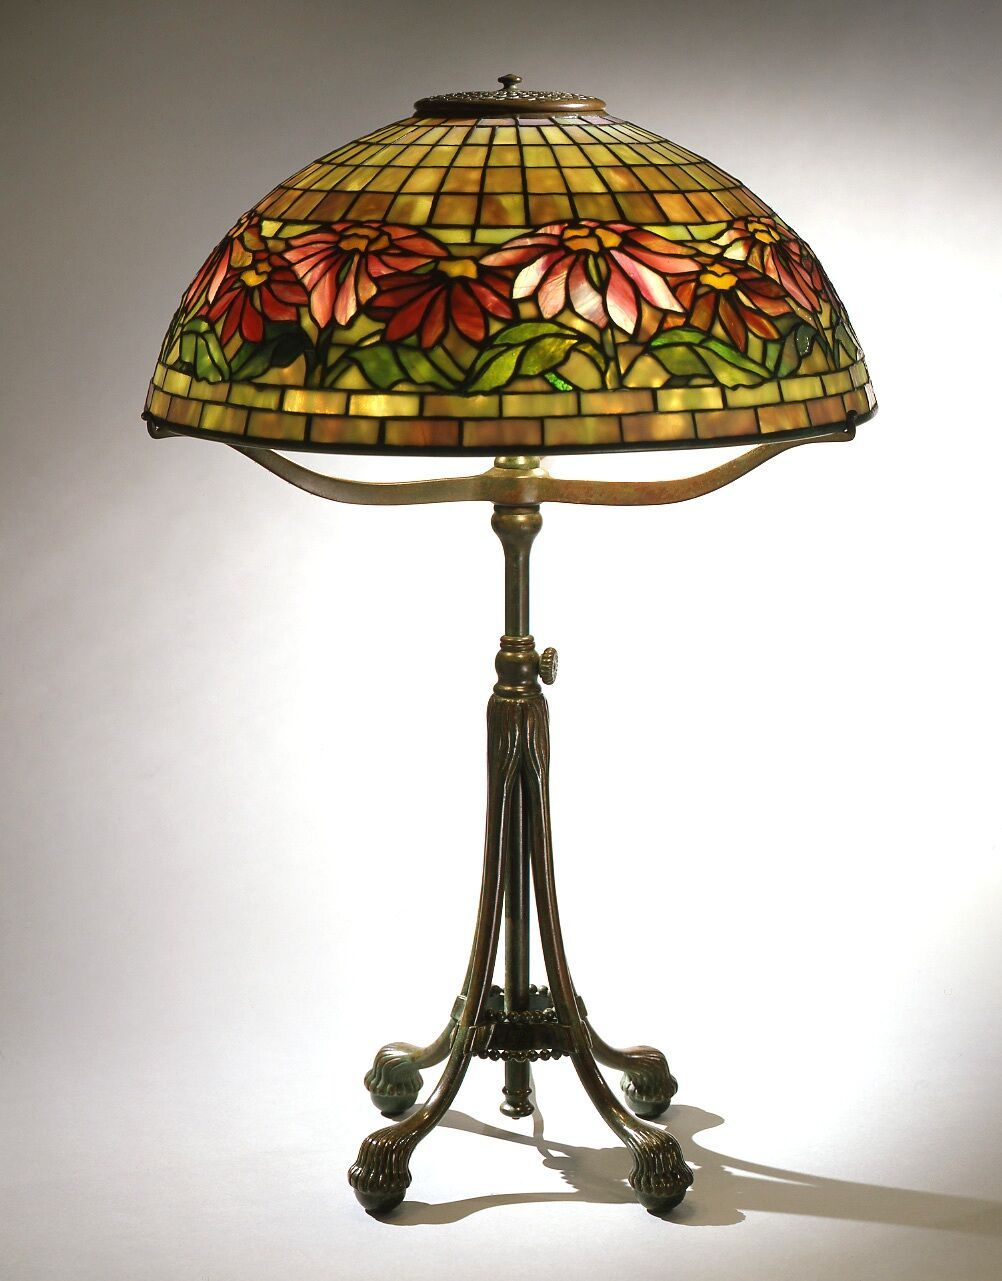 Poinsettia Library Lamp Circa 1905 Tiffany Studios 1902 1932 United States New York Leaded Gl And Bronze The Neustadt Collection Of